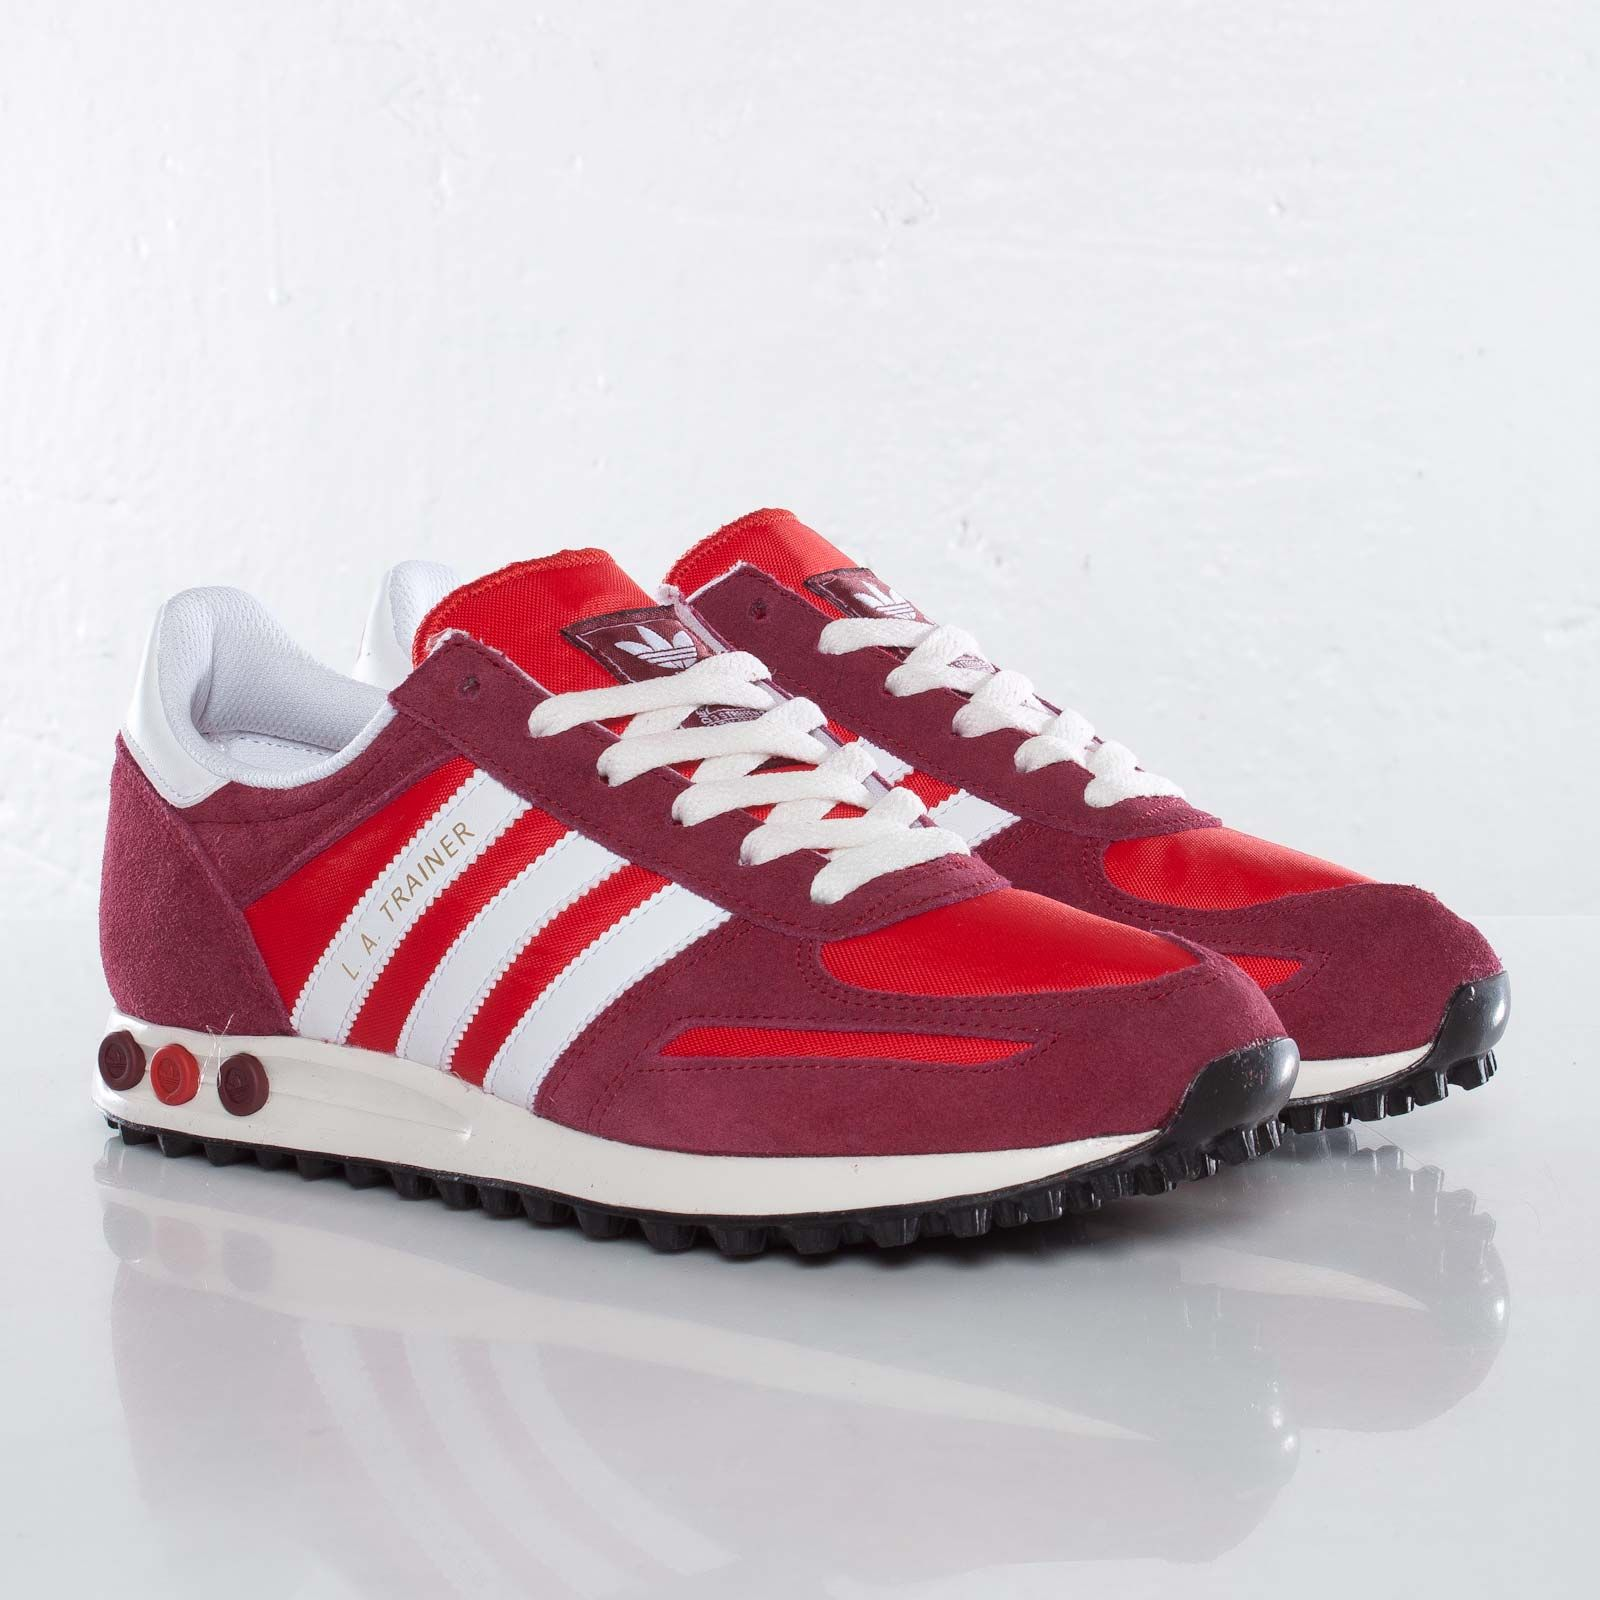 adidas Originals LA Trainer | Adidas shoes originals, Adidas ...